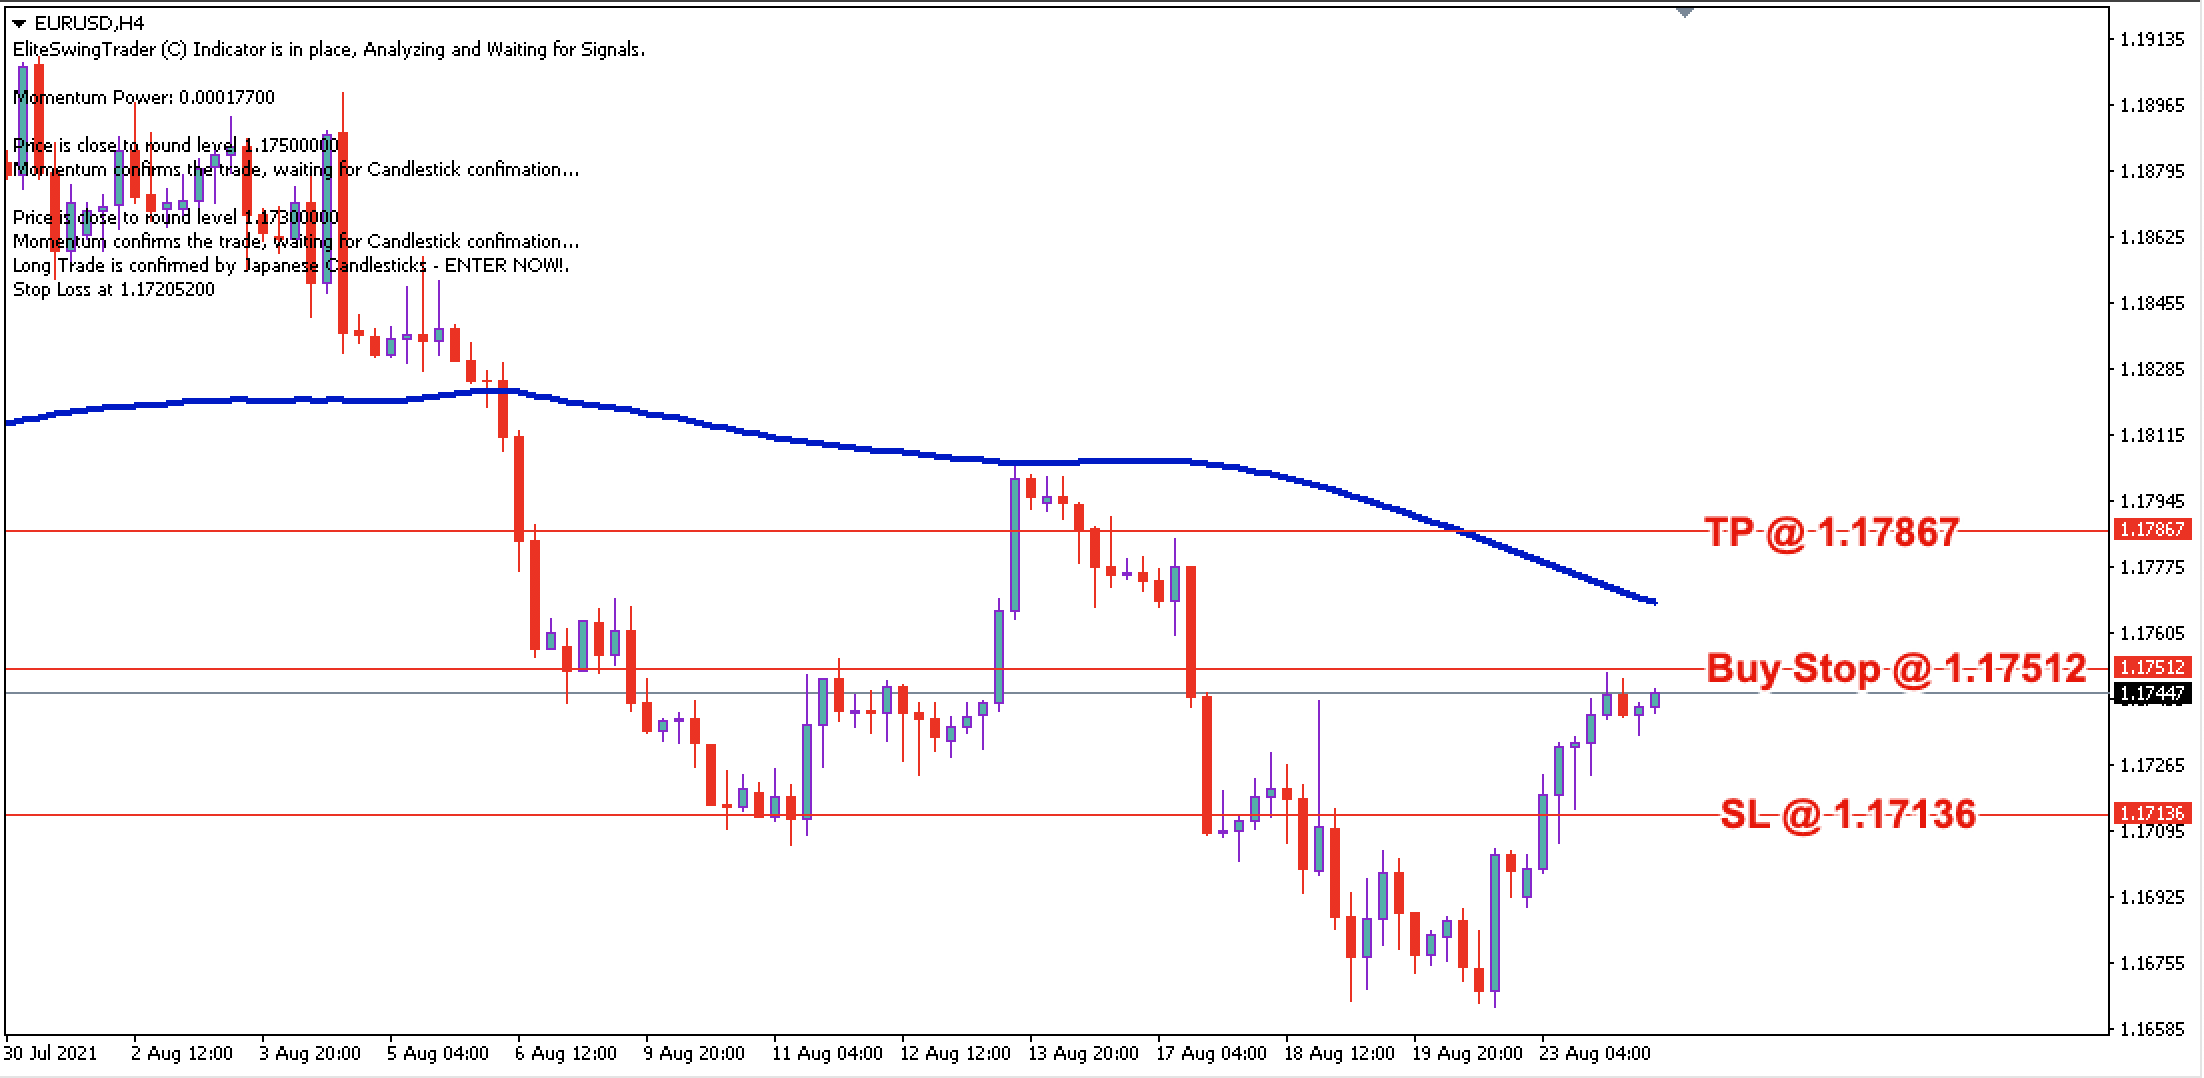 EUR/USD Daily Price Forecast – 24th August 2021